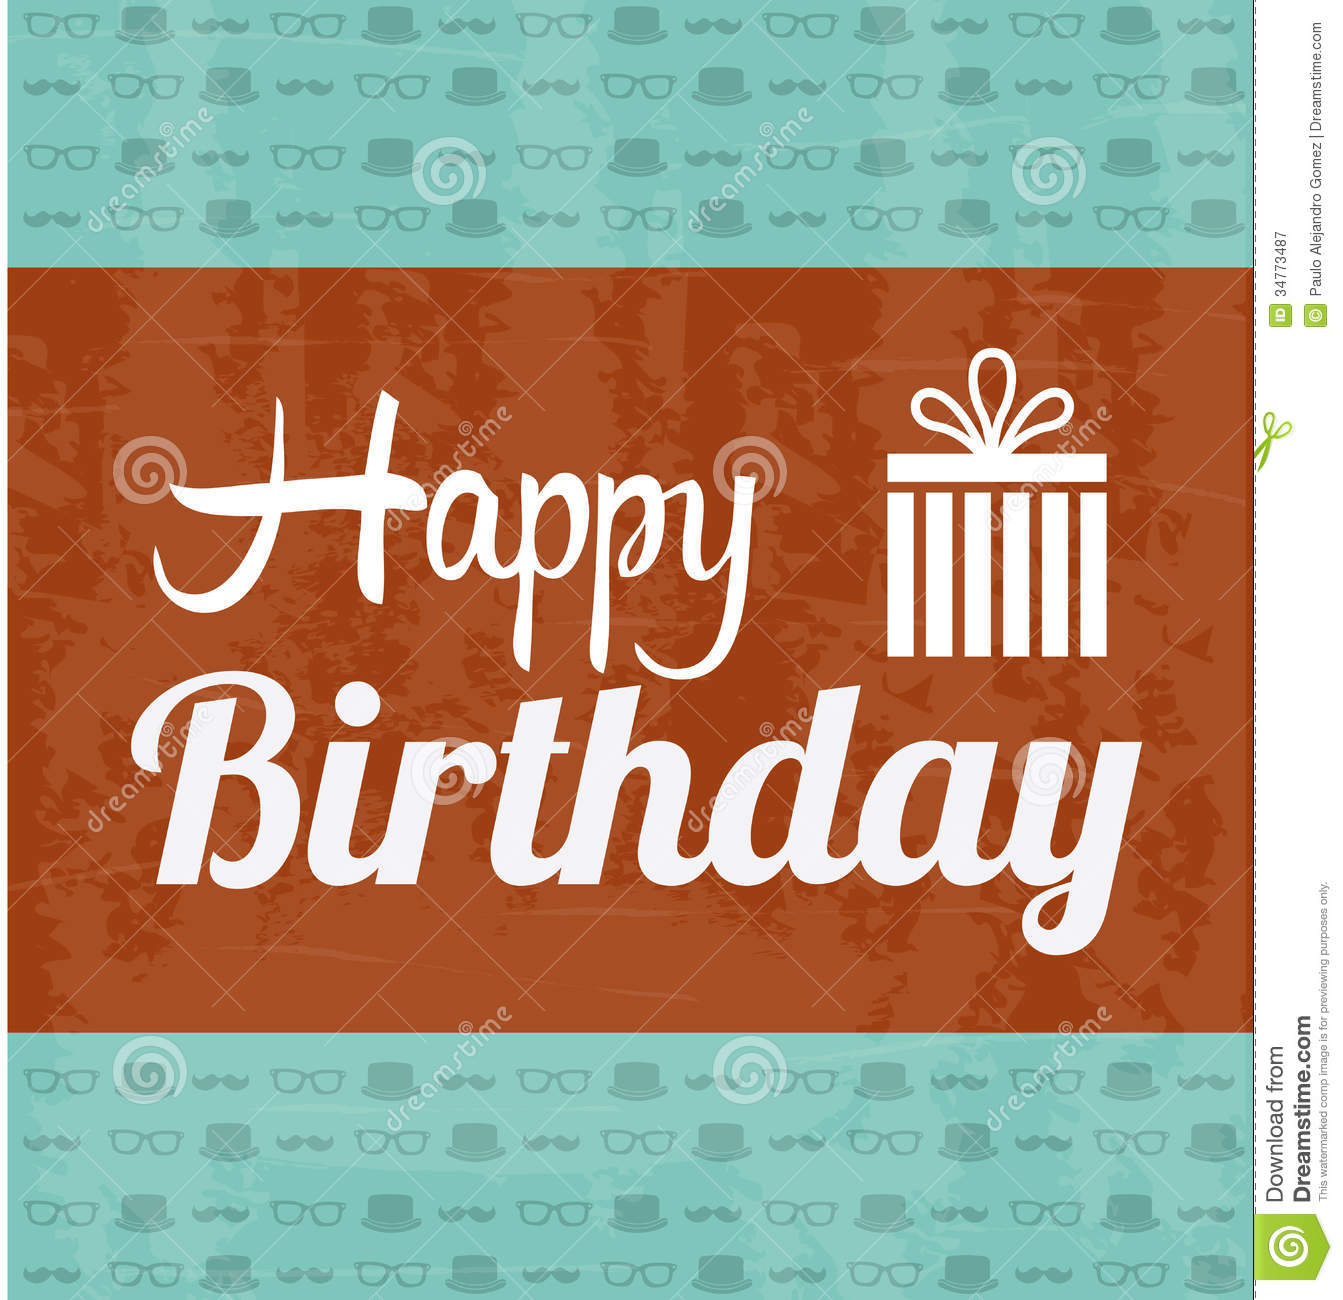 Happy Birthday Label Royalty Free Stock Photography